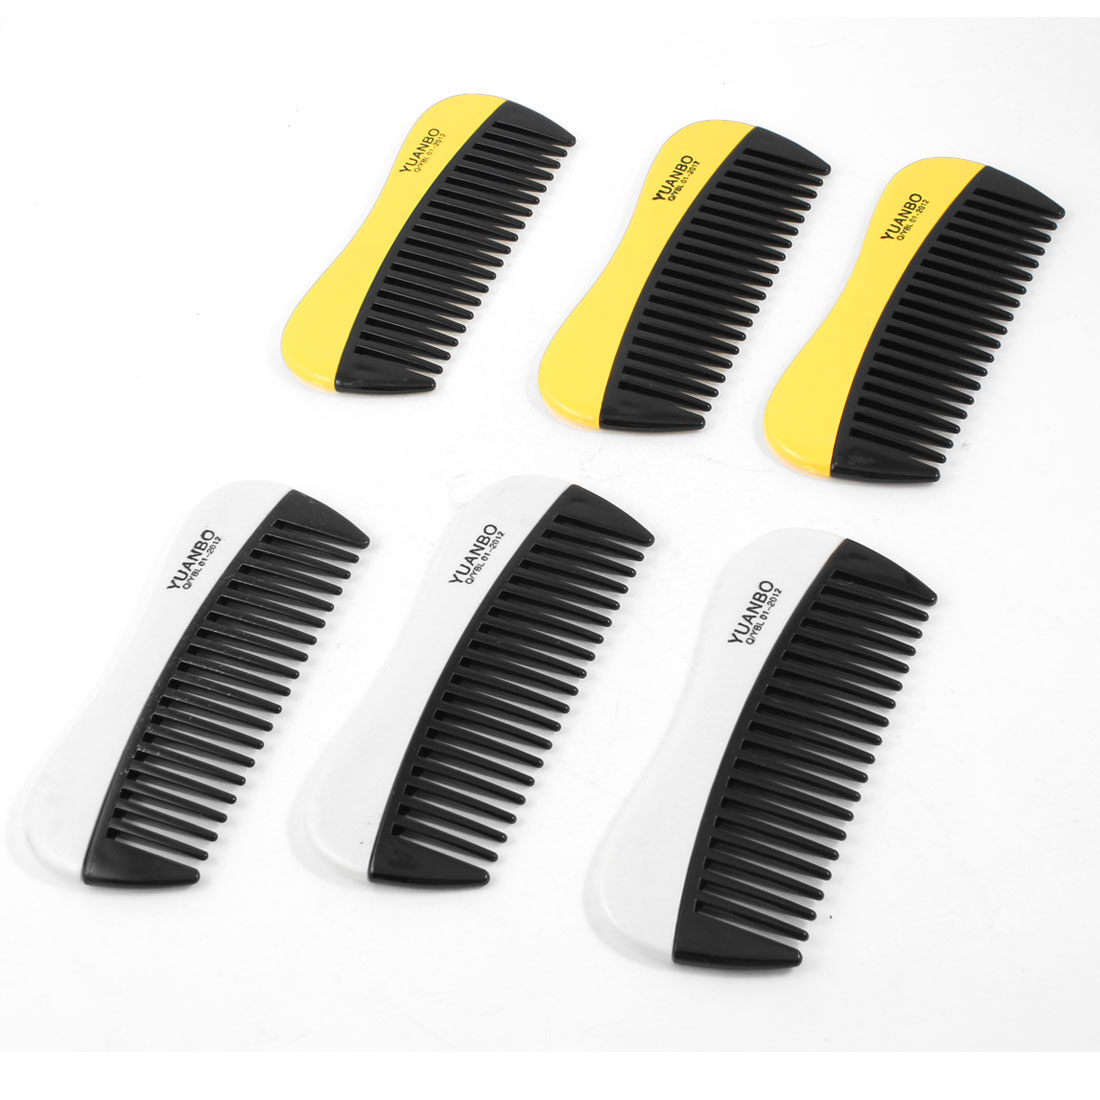 "Lady Hairdressing 20 Teeth Anti Static Plastic Hair Comb Yellow 4.6"" Long 6 Pcs"